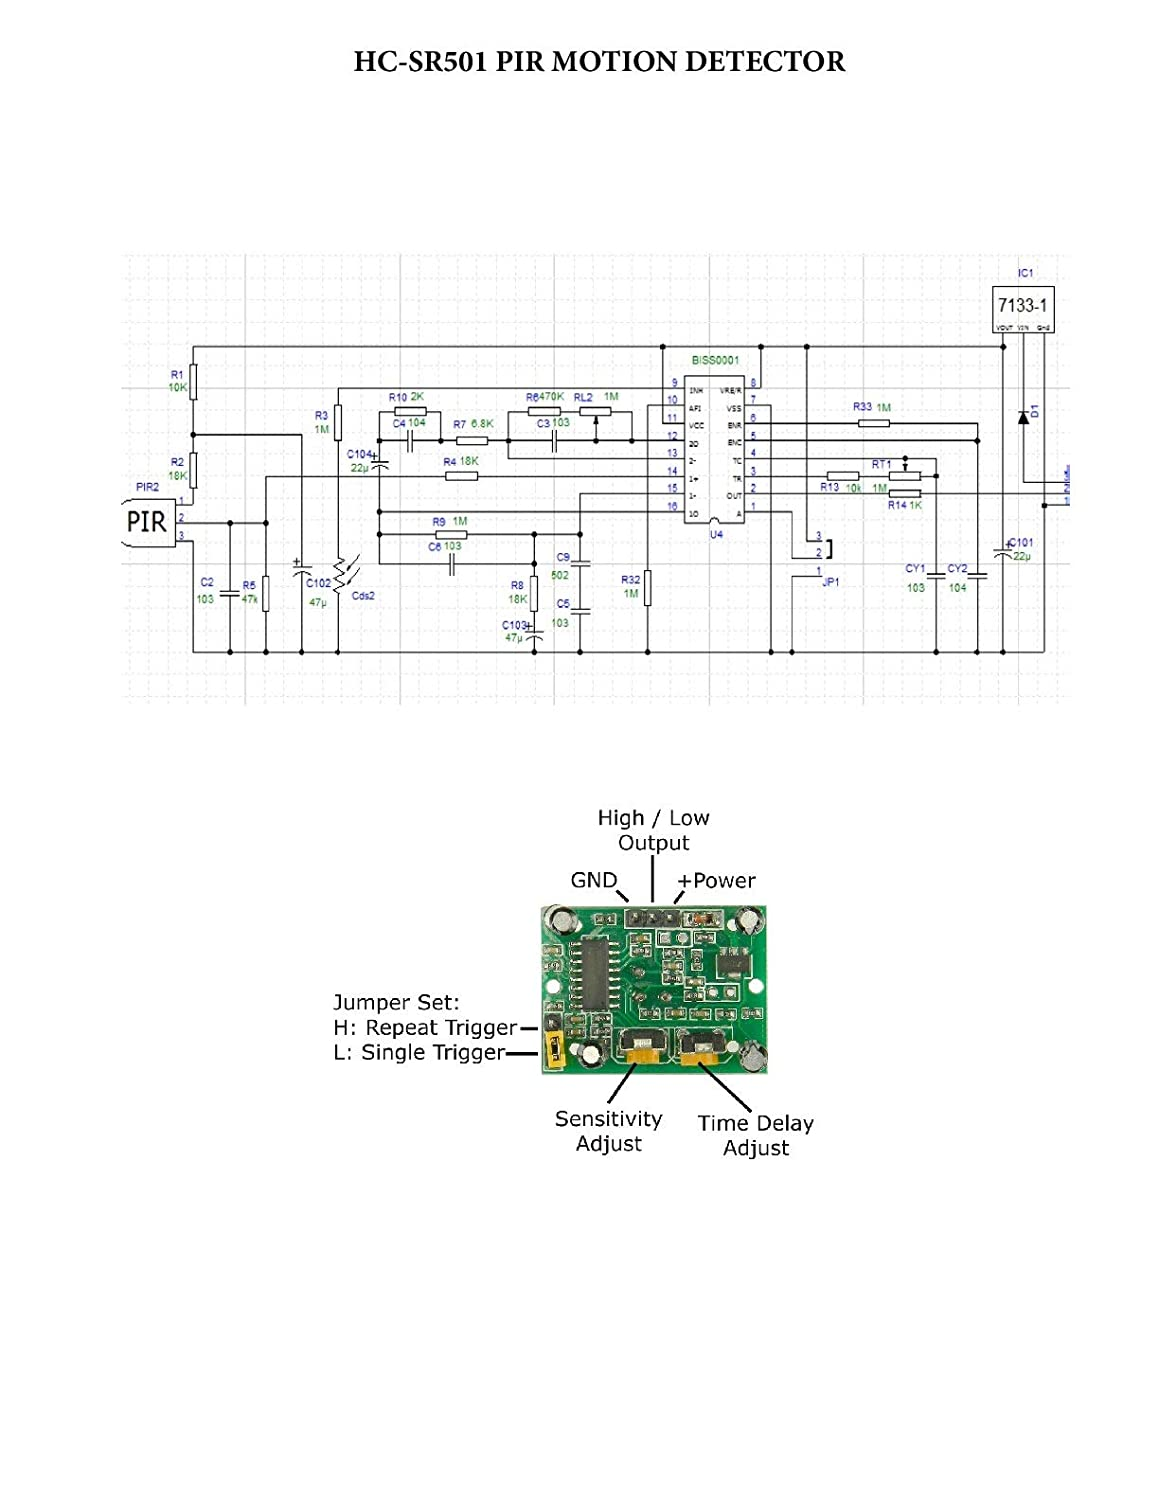 Sensor Circuit Diagram Further Pir Motion D Sun Hc Sr501 Pyroelectric Infrared Detector Module Industrial Scientific